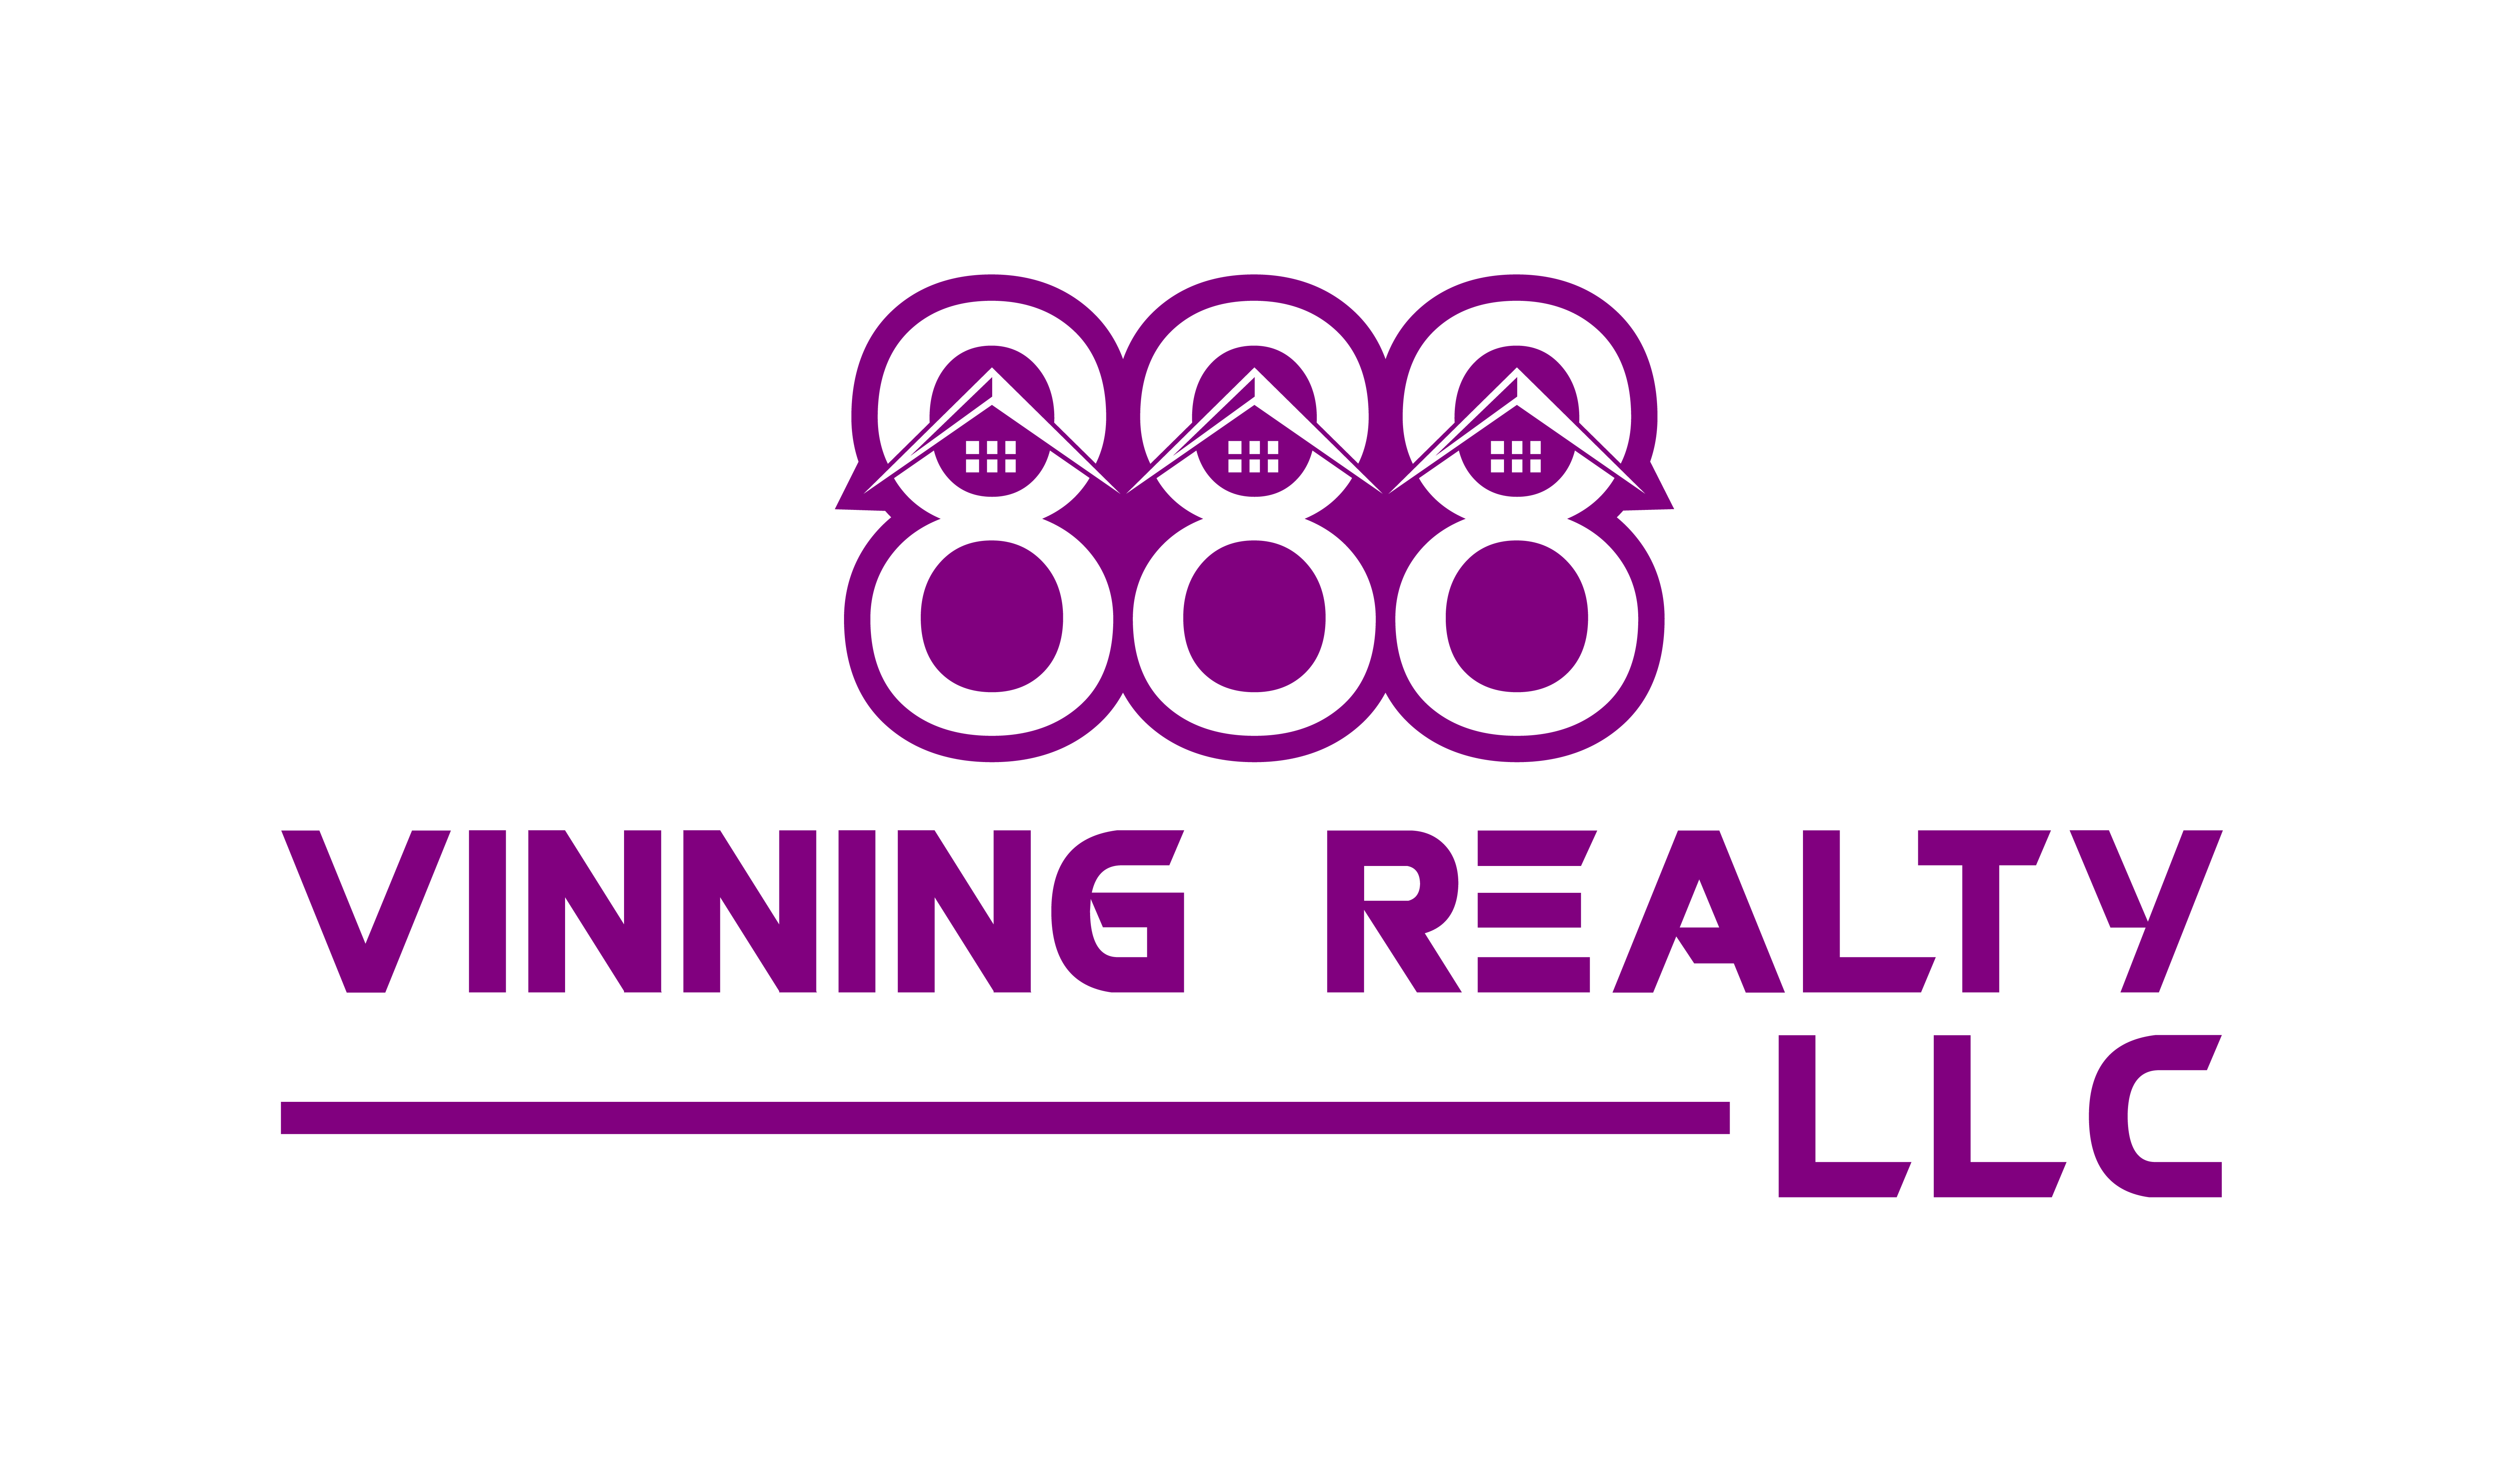 888 Vinning Realty LLC